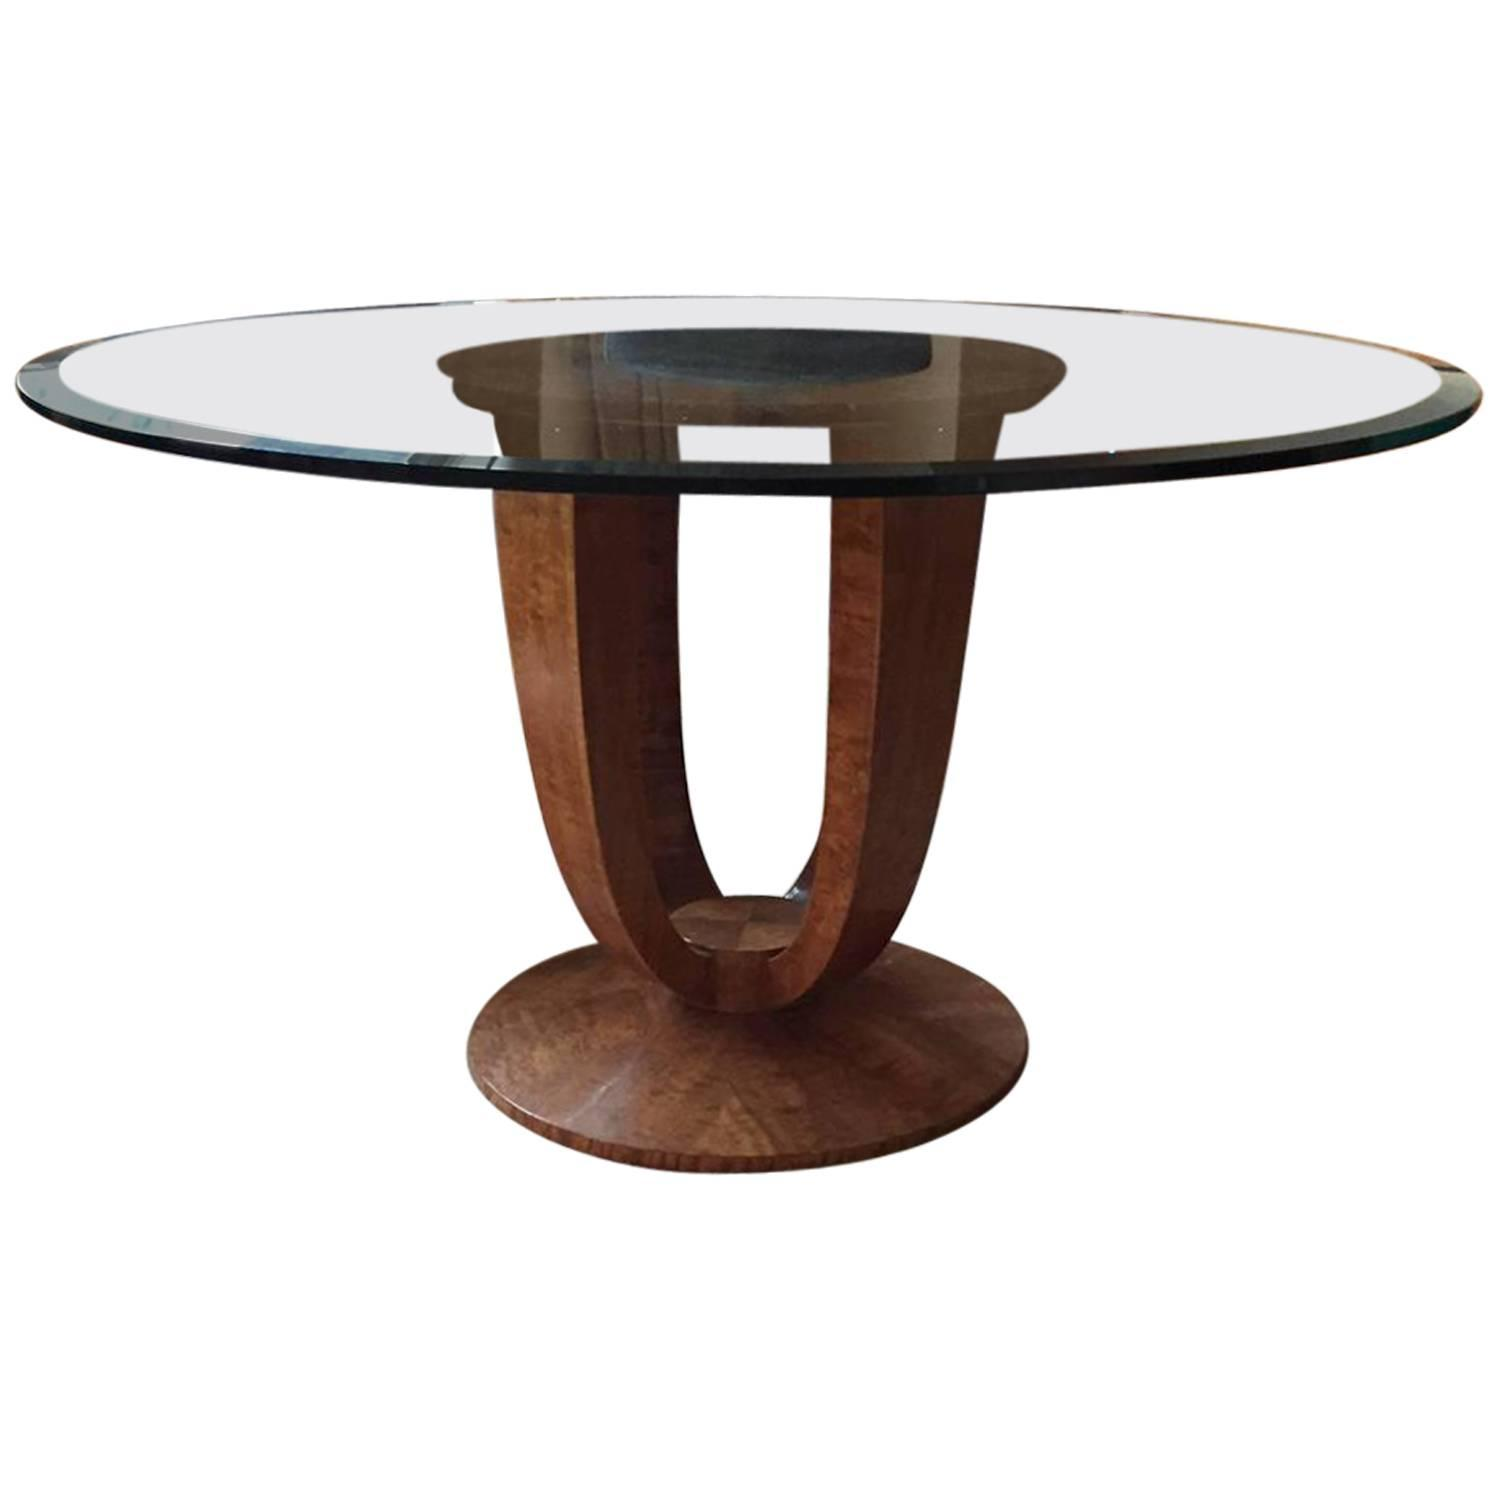 roche bobois dining table 1970s at 1stdibs. Black Bedroom Furniture Sets. Home Design Ideas